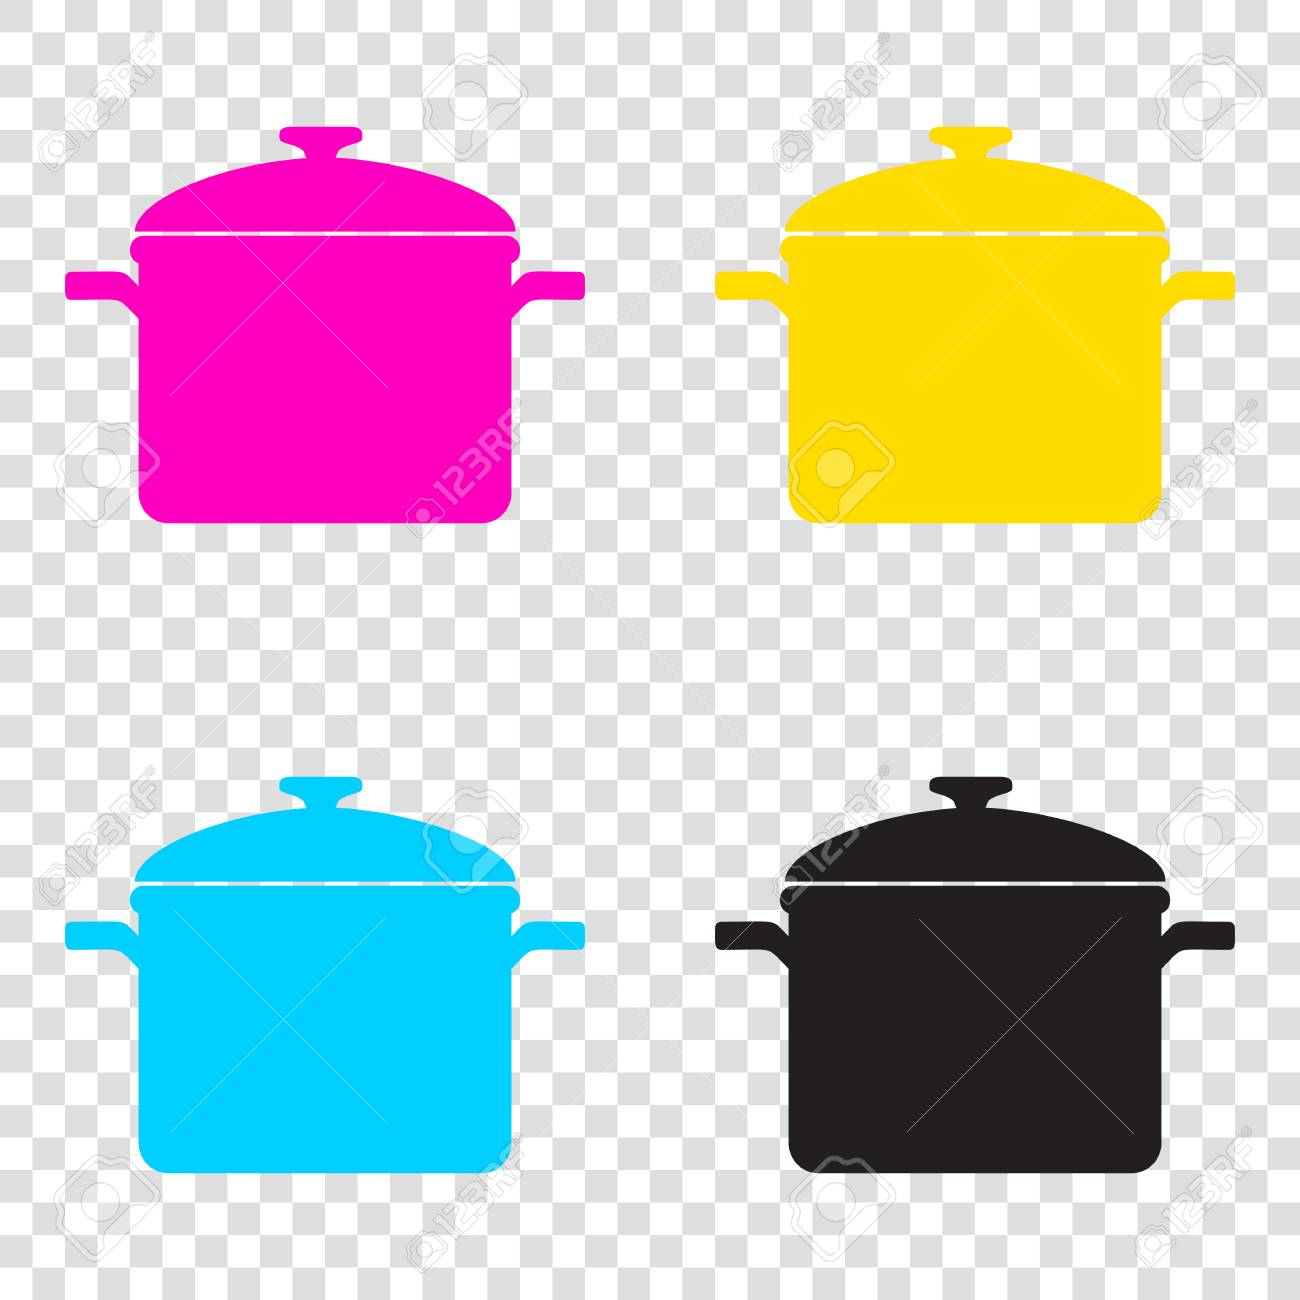 Simple, Black Cooking Pan Silhouette. Hot Saucepan Silhouette Stock Vector  - Illustration of equipment, isolated: 113583906